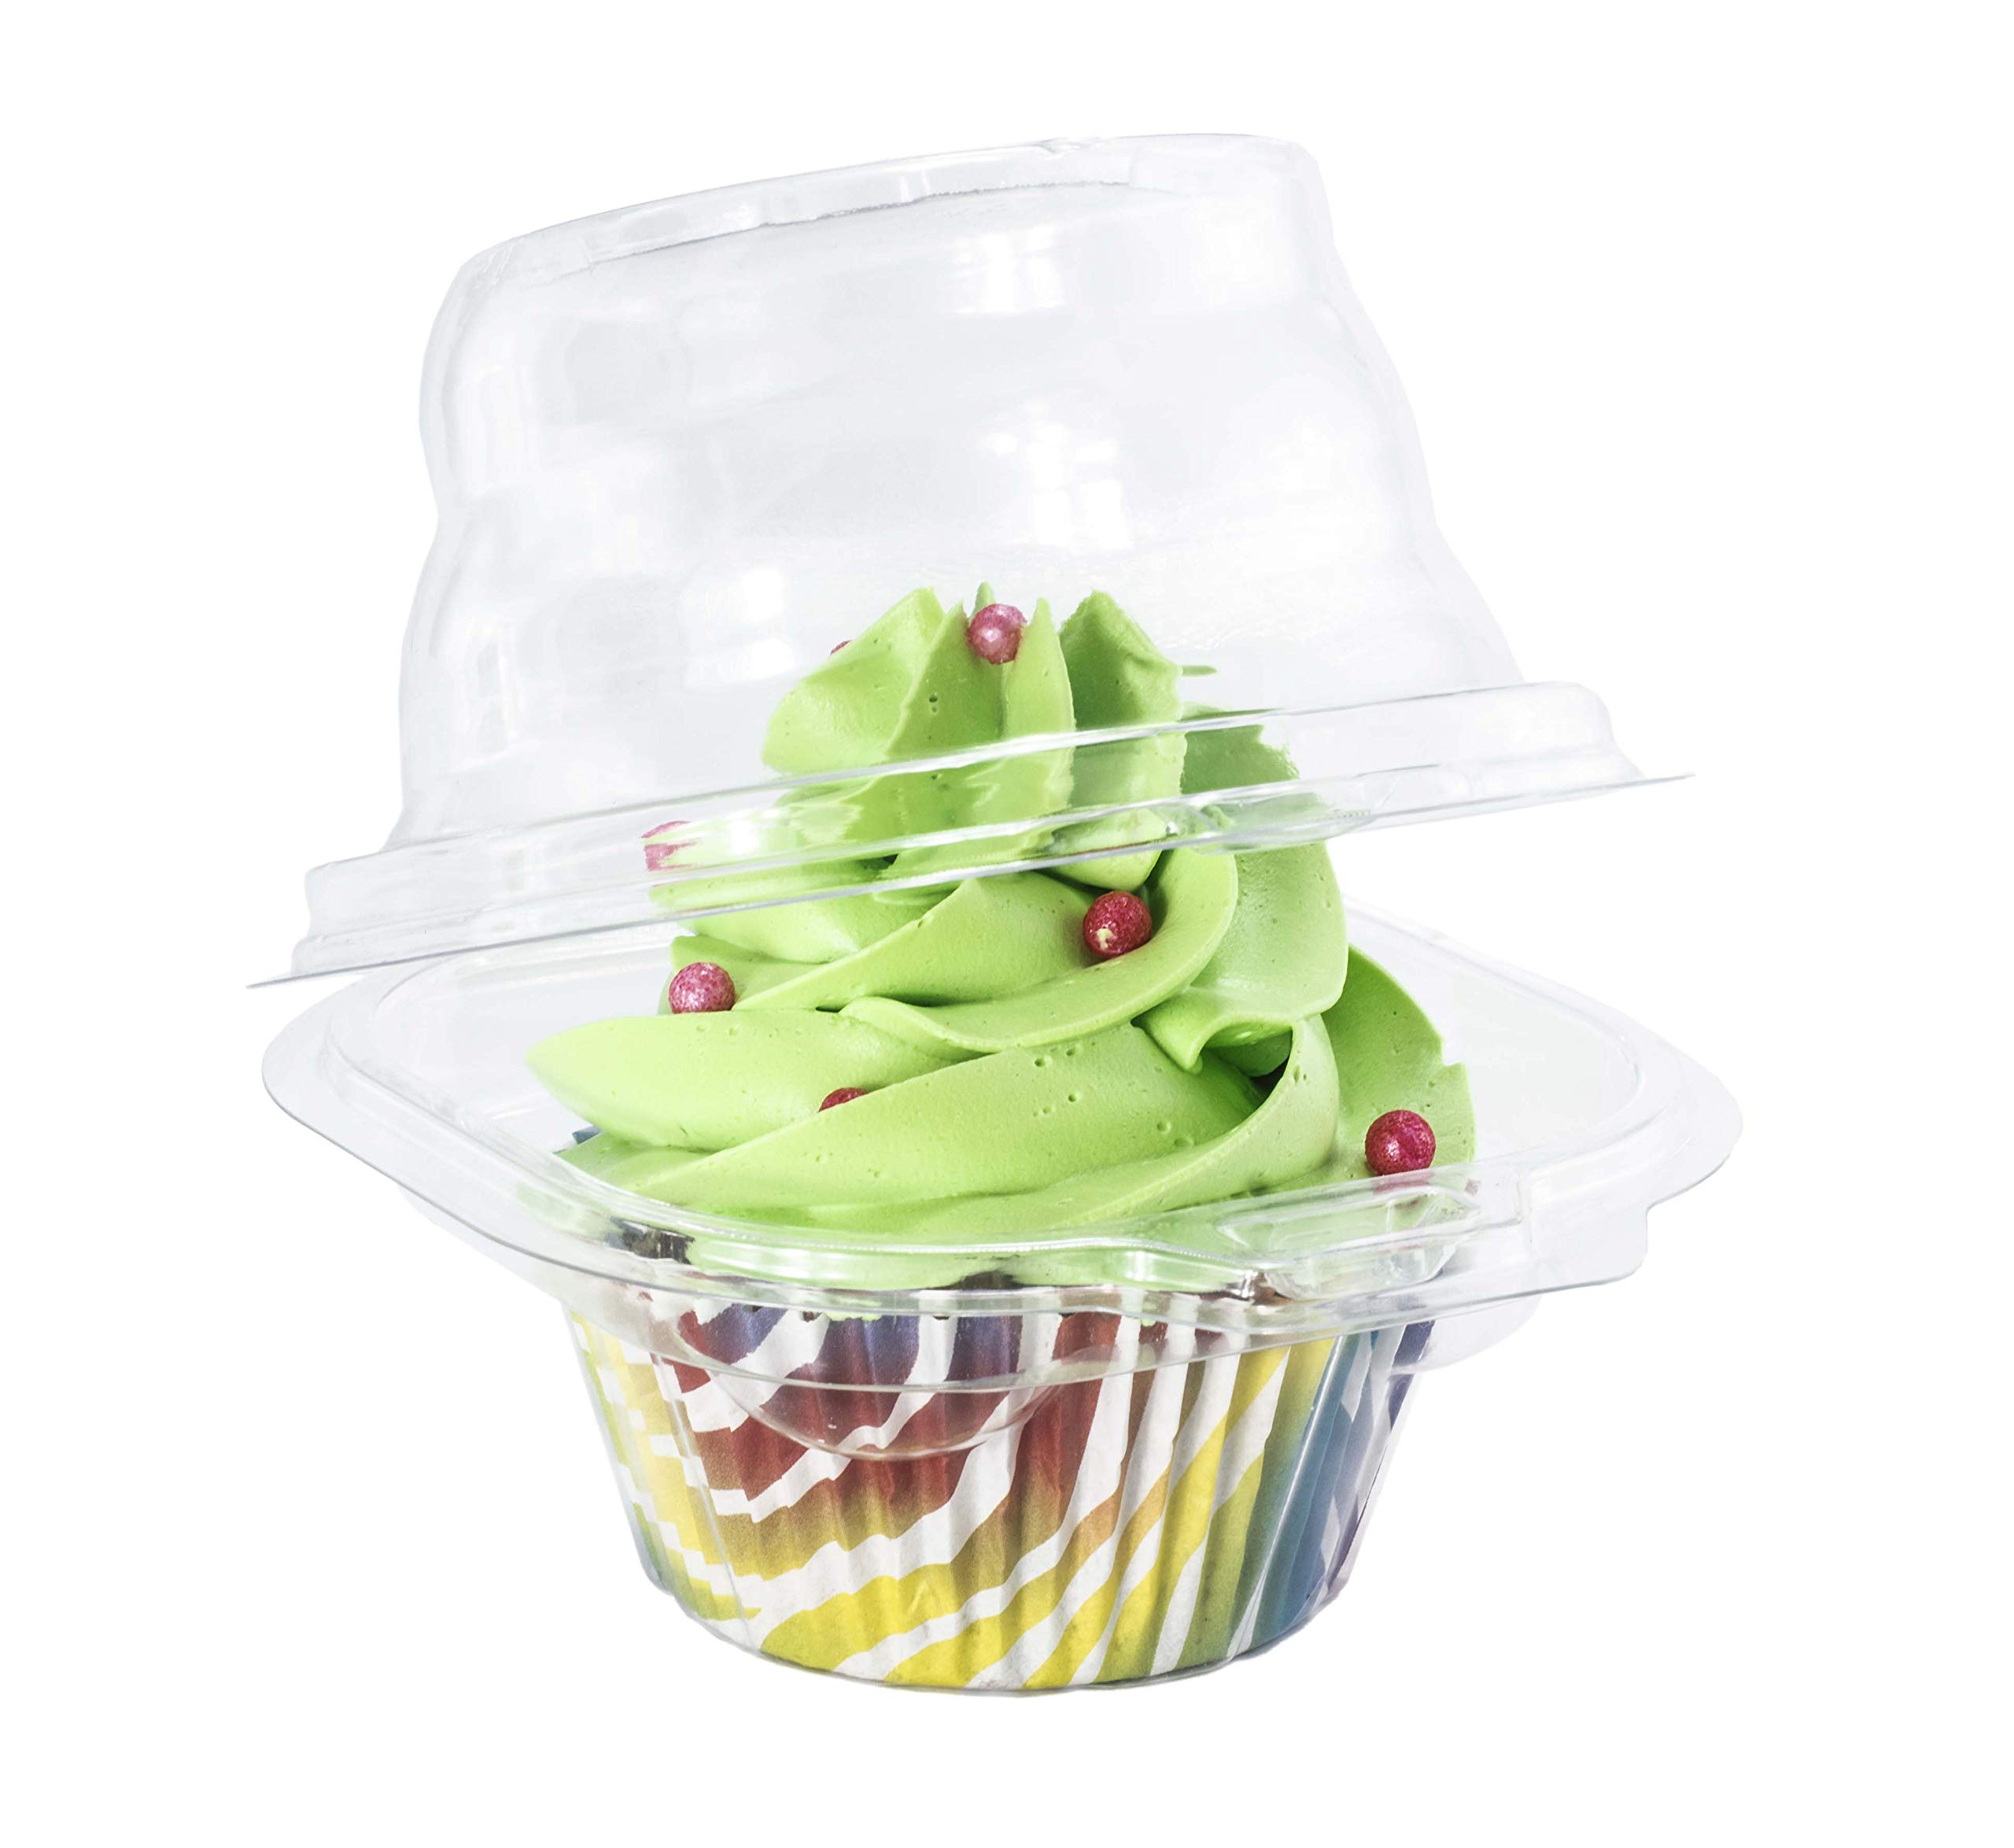 Katgely Individual Cupcake Container - Single Compartment Cupcake Carrier Holder Box - Stackable - Deep Dome - Clear Plastic - BPA-Free- Pack of 50